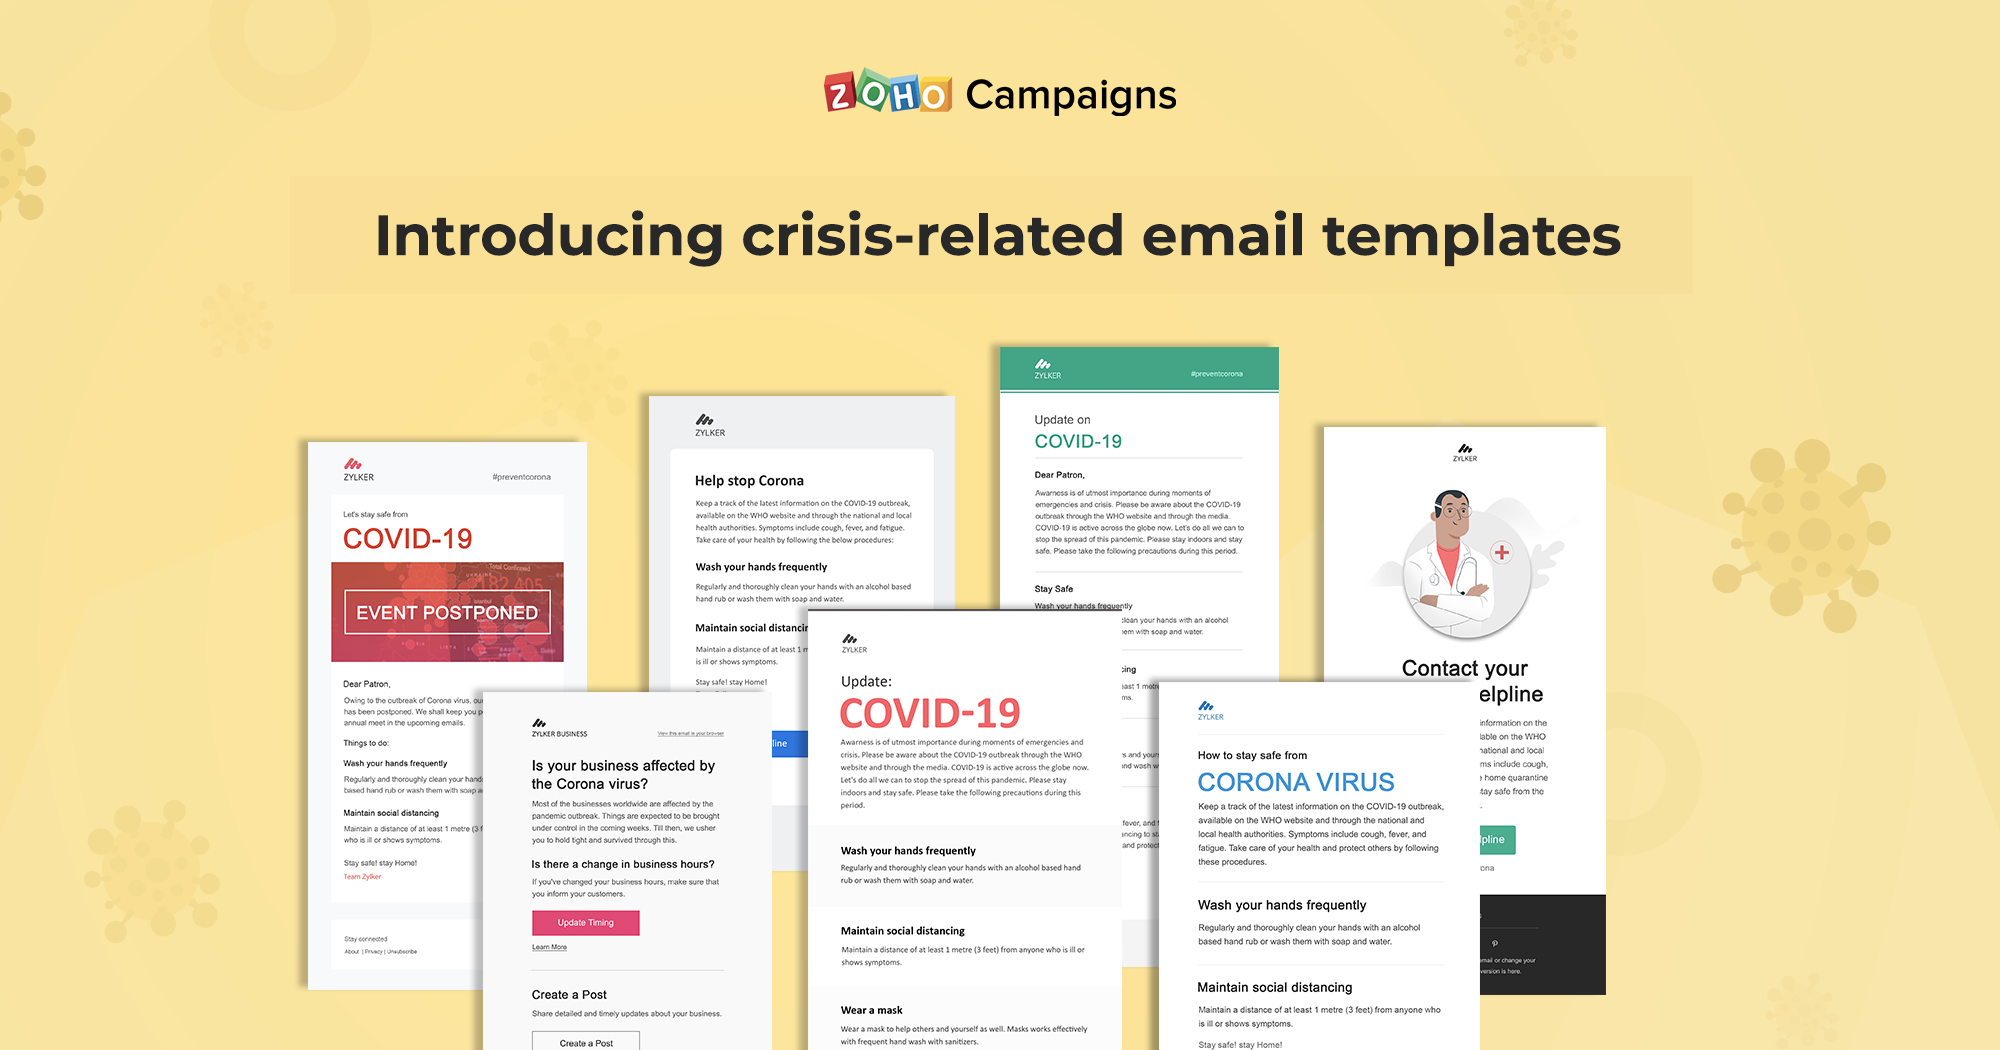 Introducing crisis-related email templates